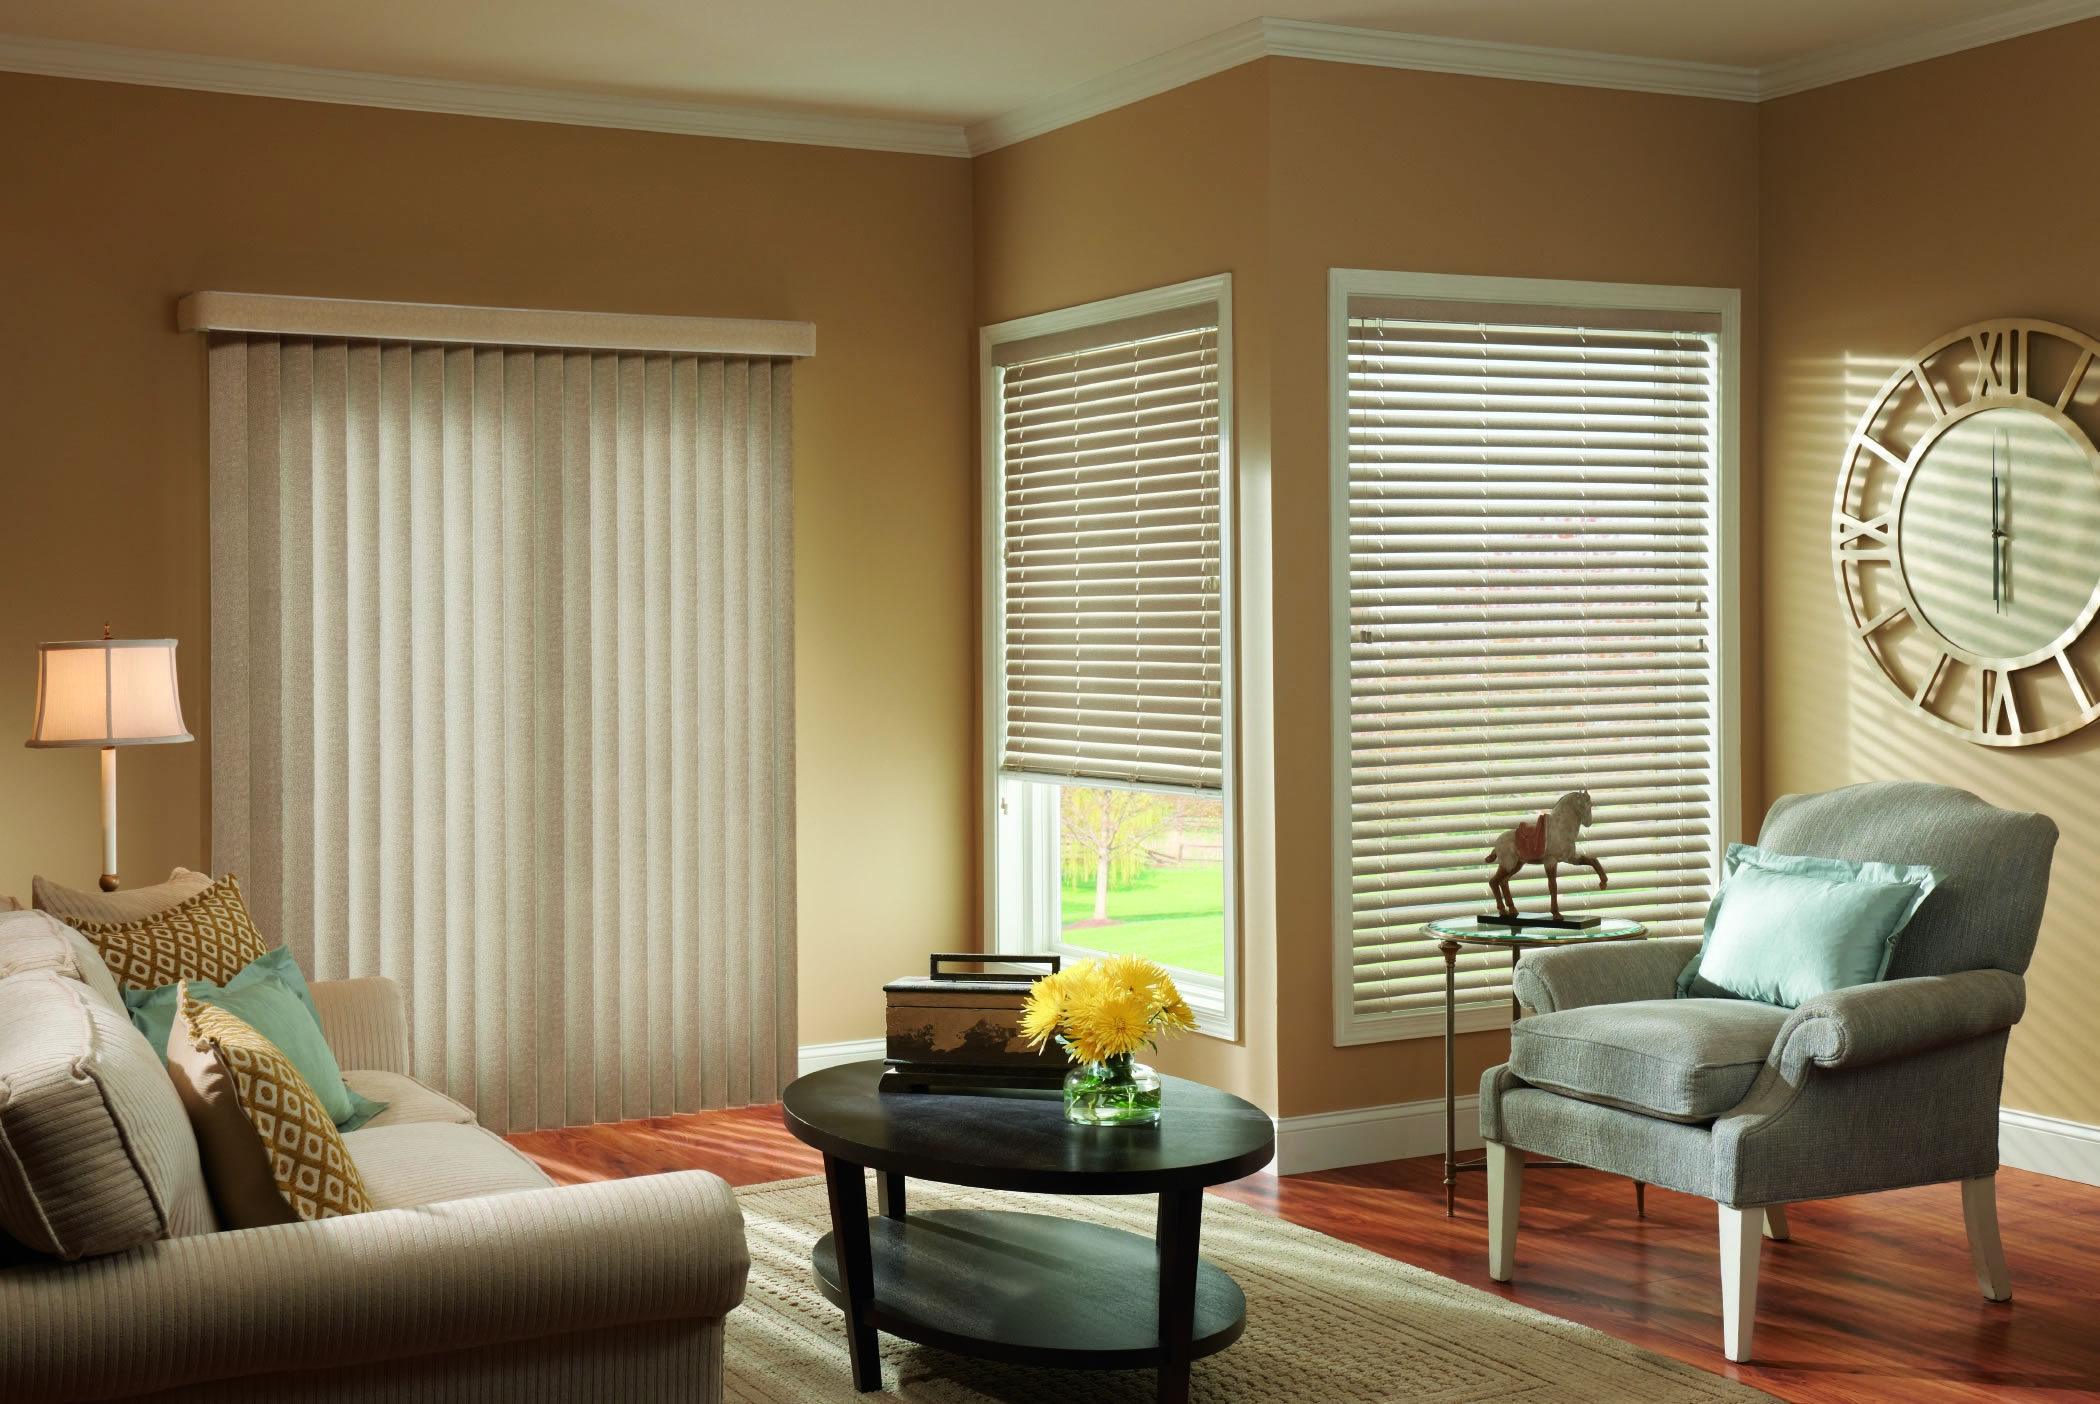 Better Blinds Vertical Blinds With Regard To Front Room Blinds (Image 3 of 15)